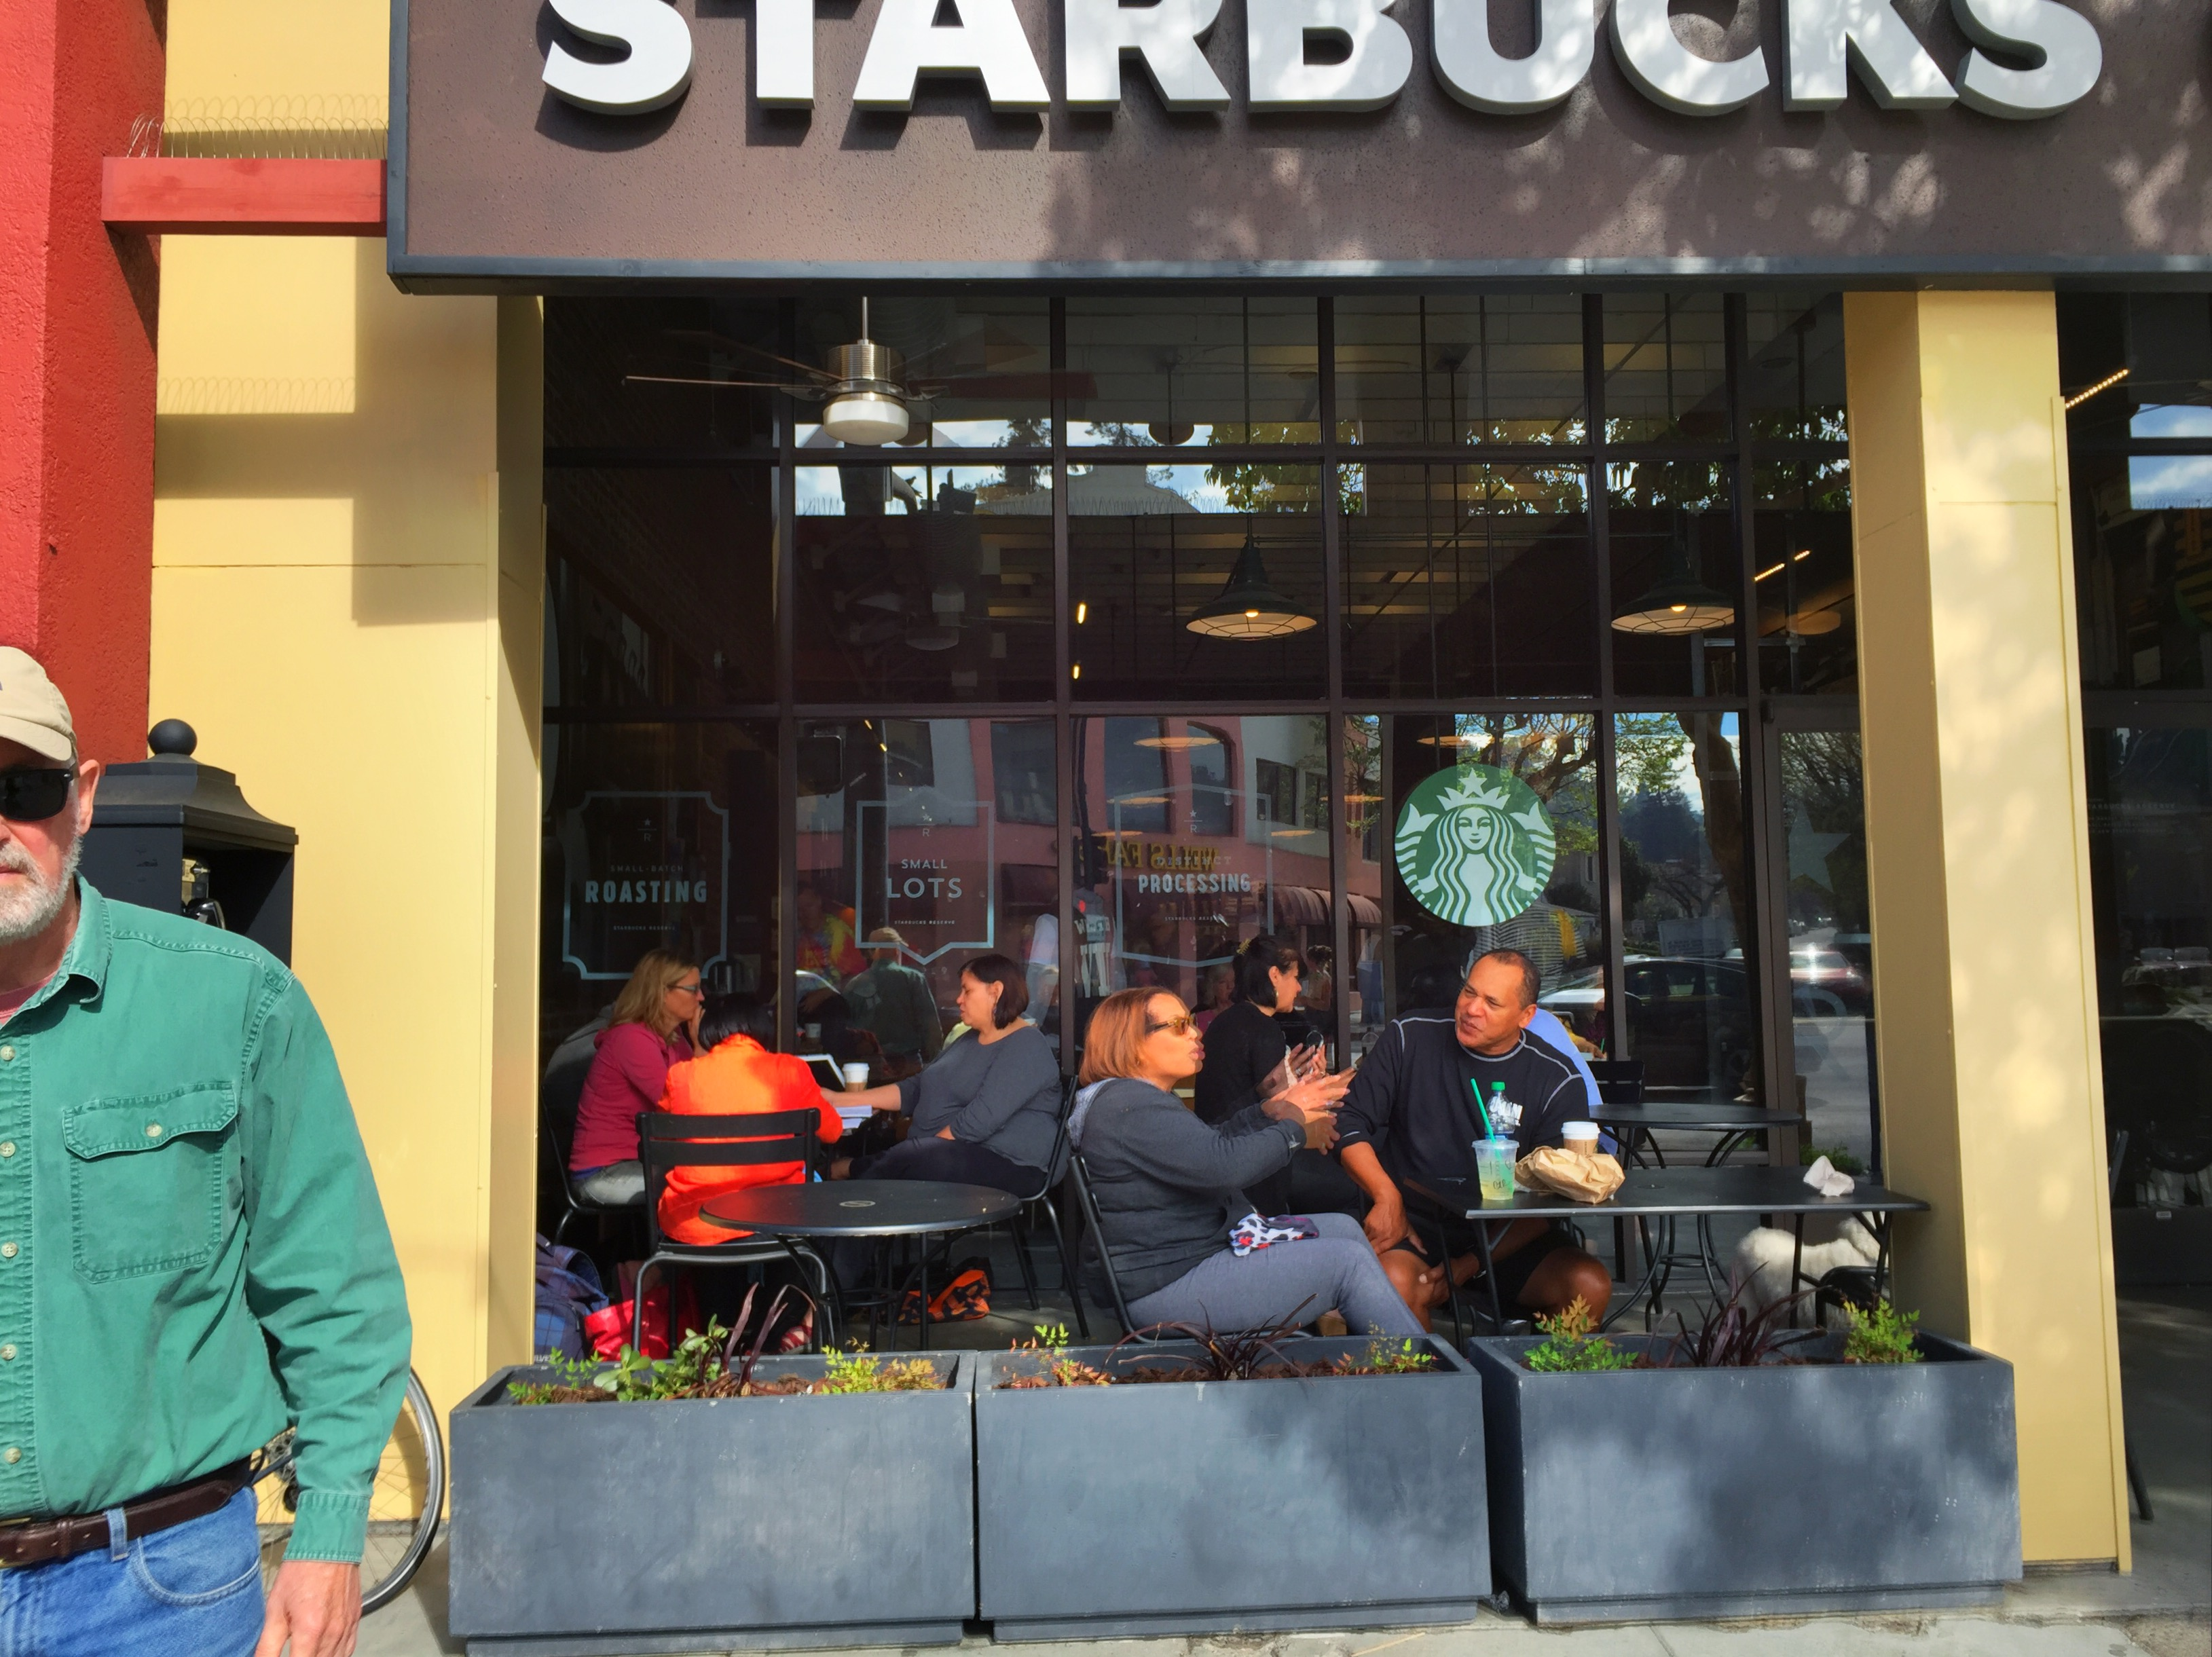 There is always a Starbucks on every corner